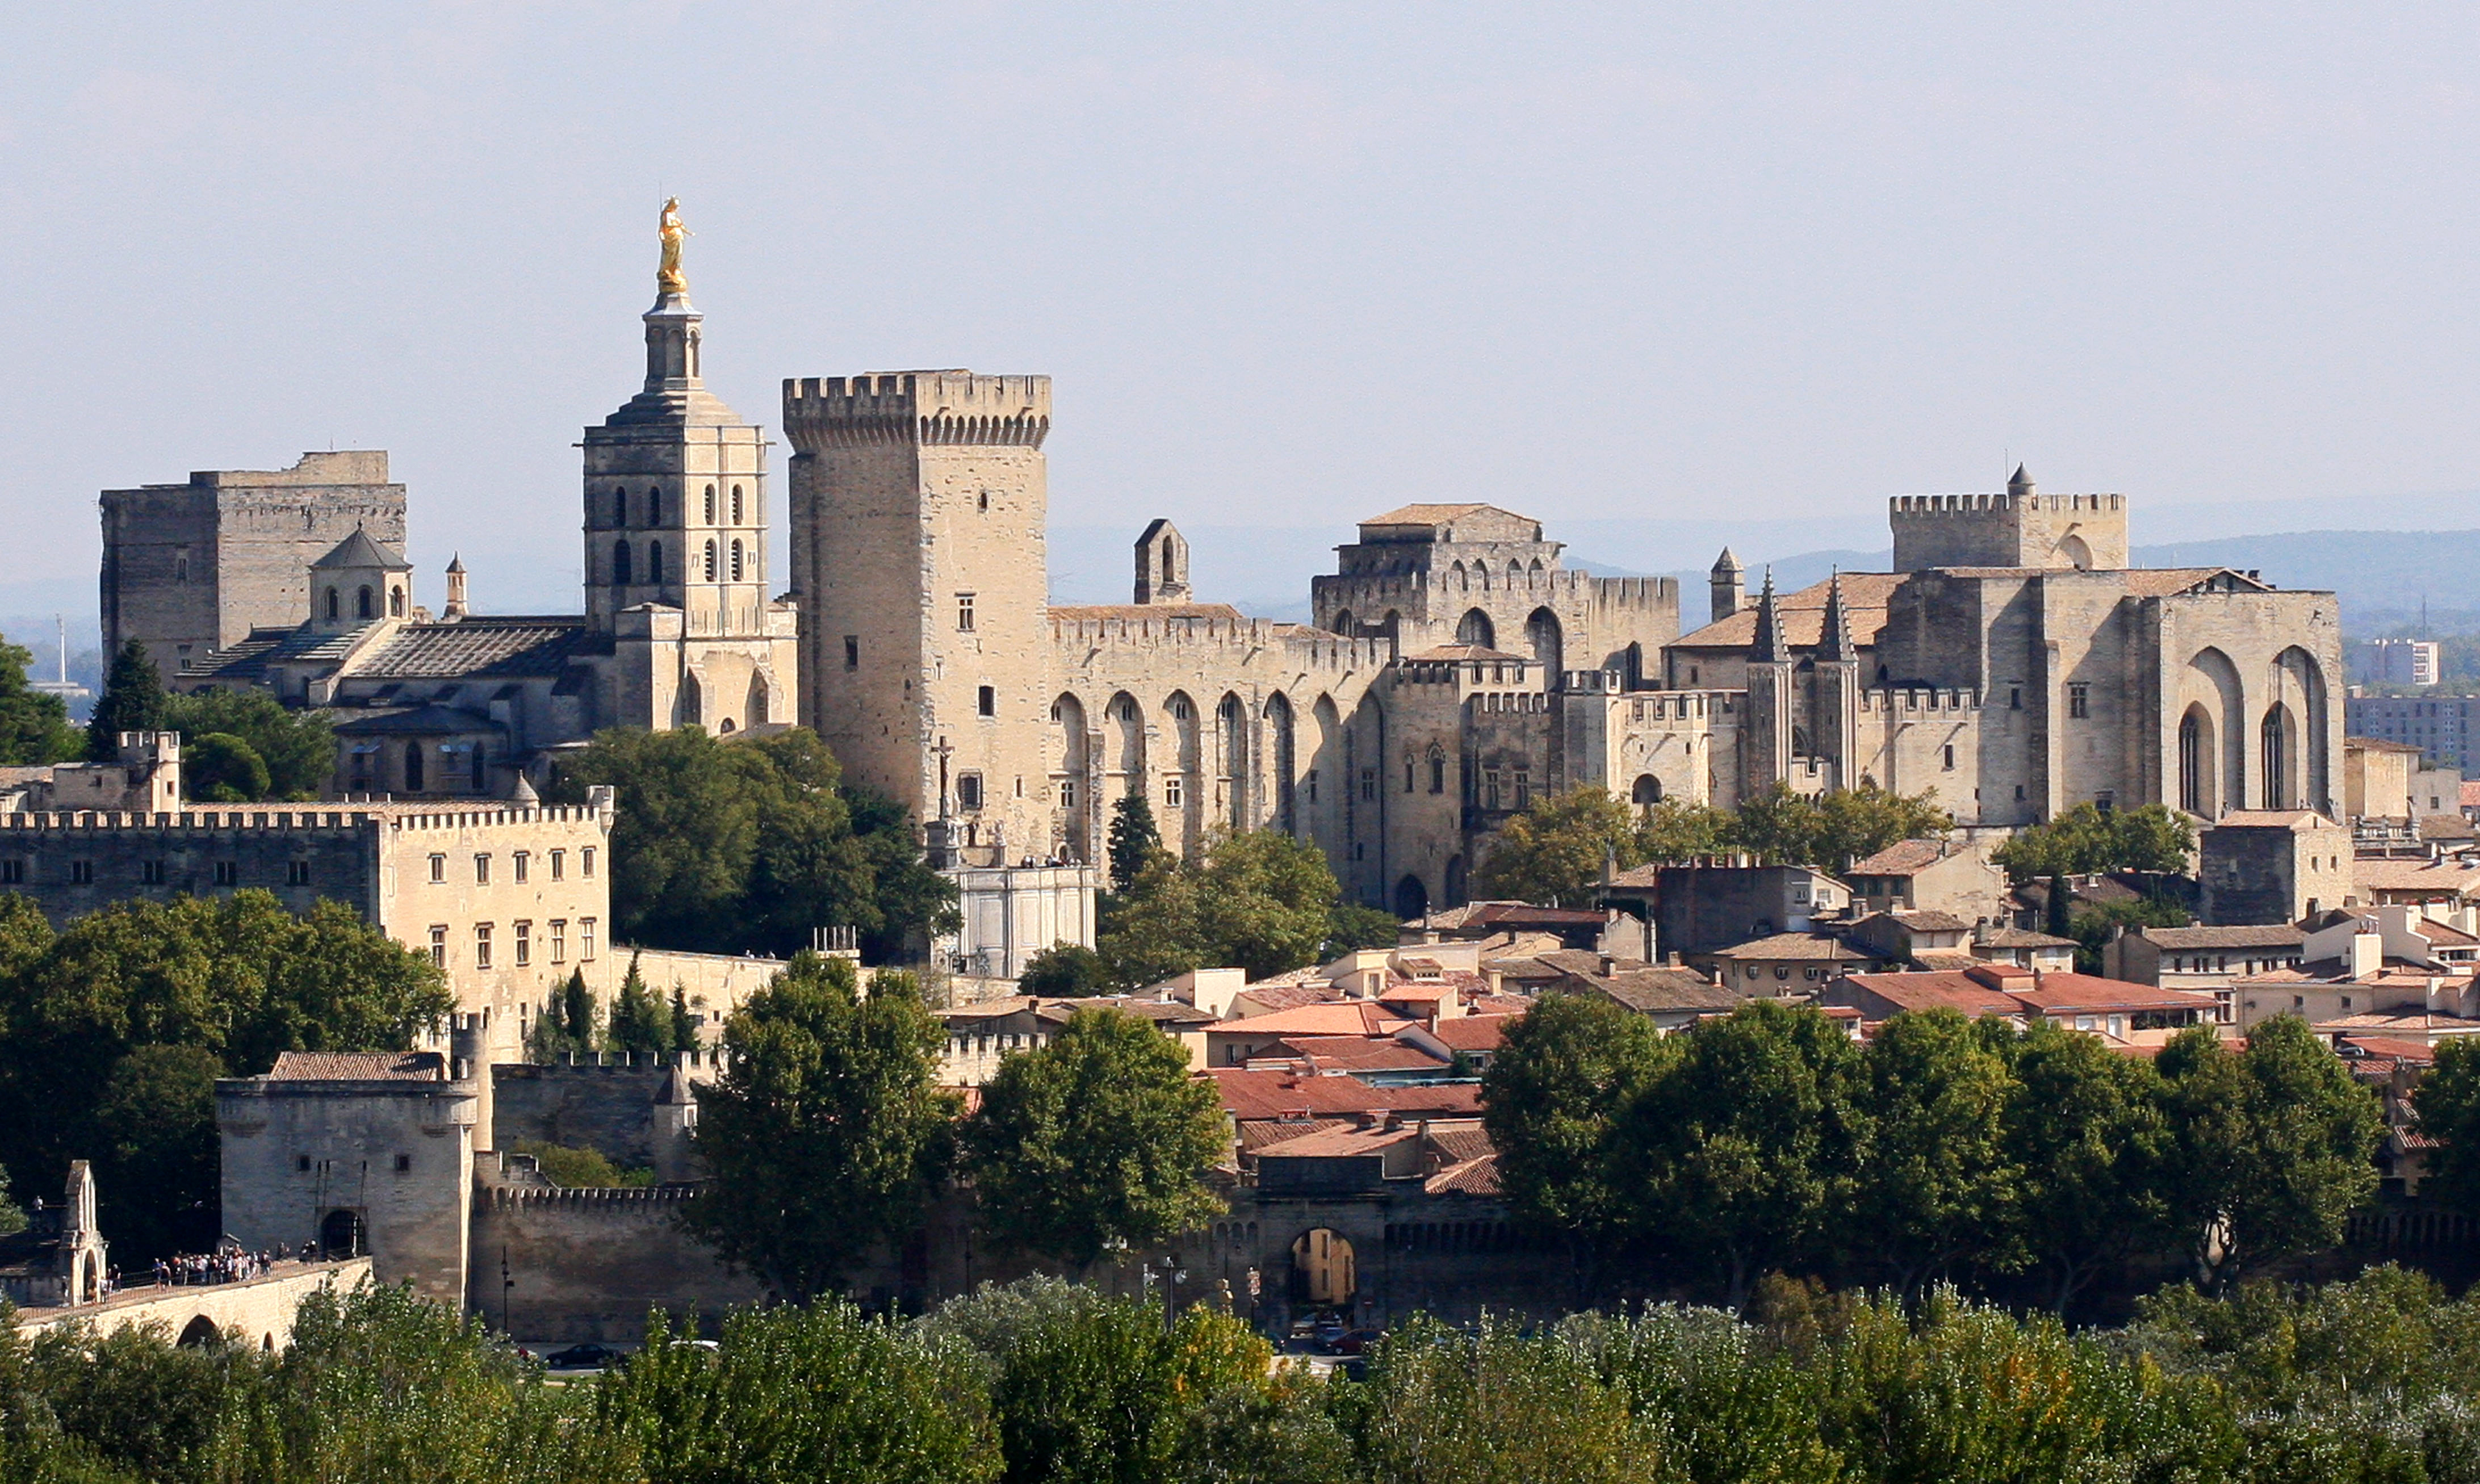 http://upload.wikimedia.org/wikipedia/commons/a/a3/Avignon,_Palais_des_Papes_depuis_Tour_Philippe_le_Bel_by_JM_Rosier.jpg